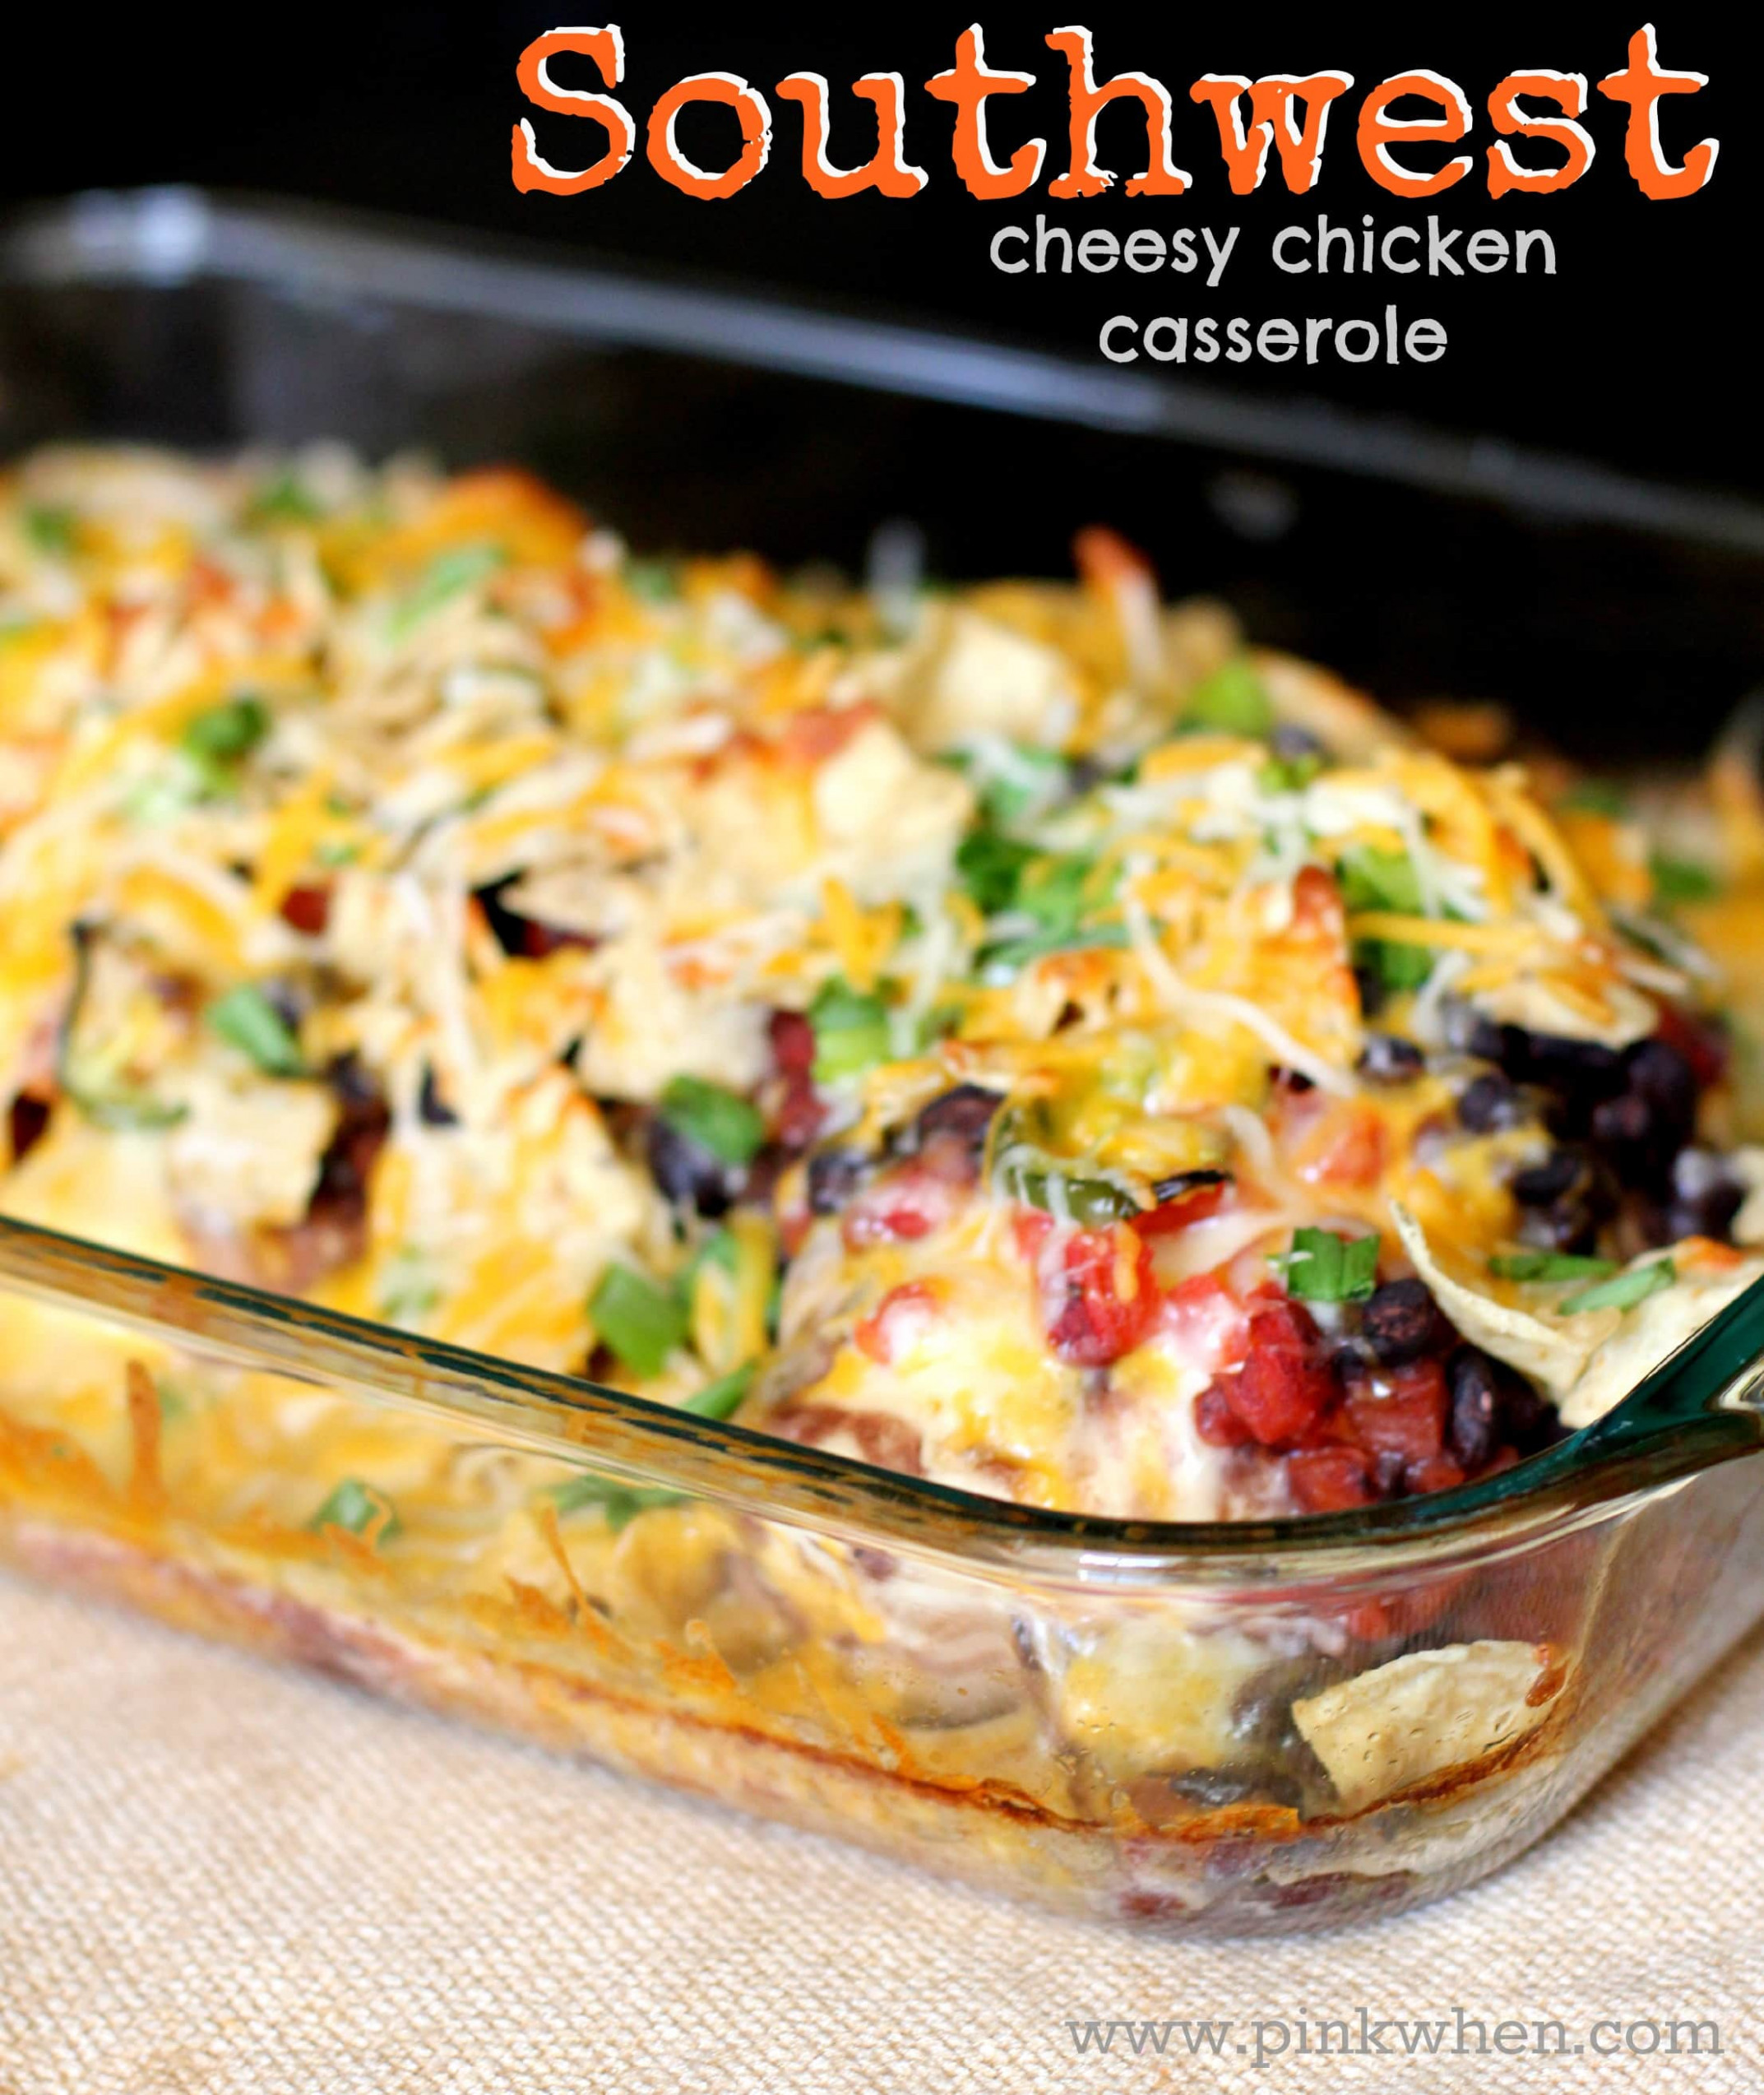 How to Make a Southwest Cheesy Chicken Casserole - PinkWhen